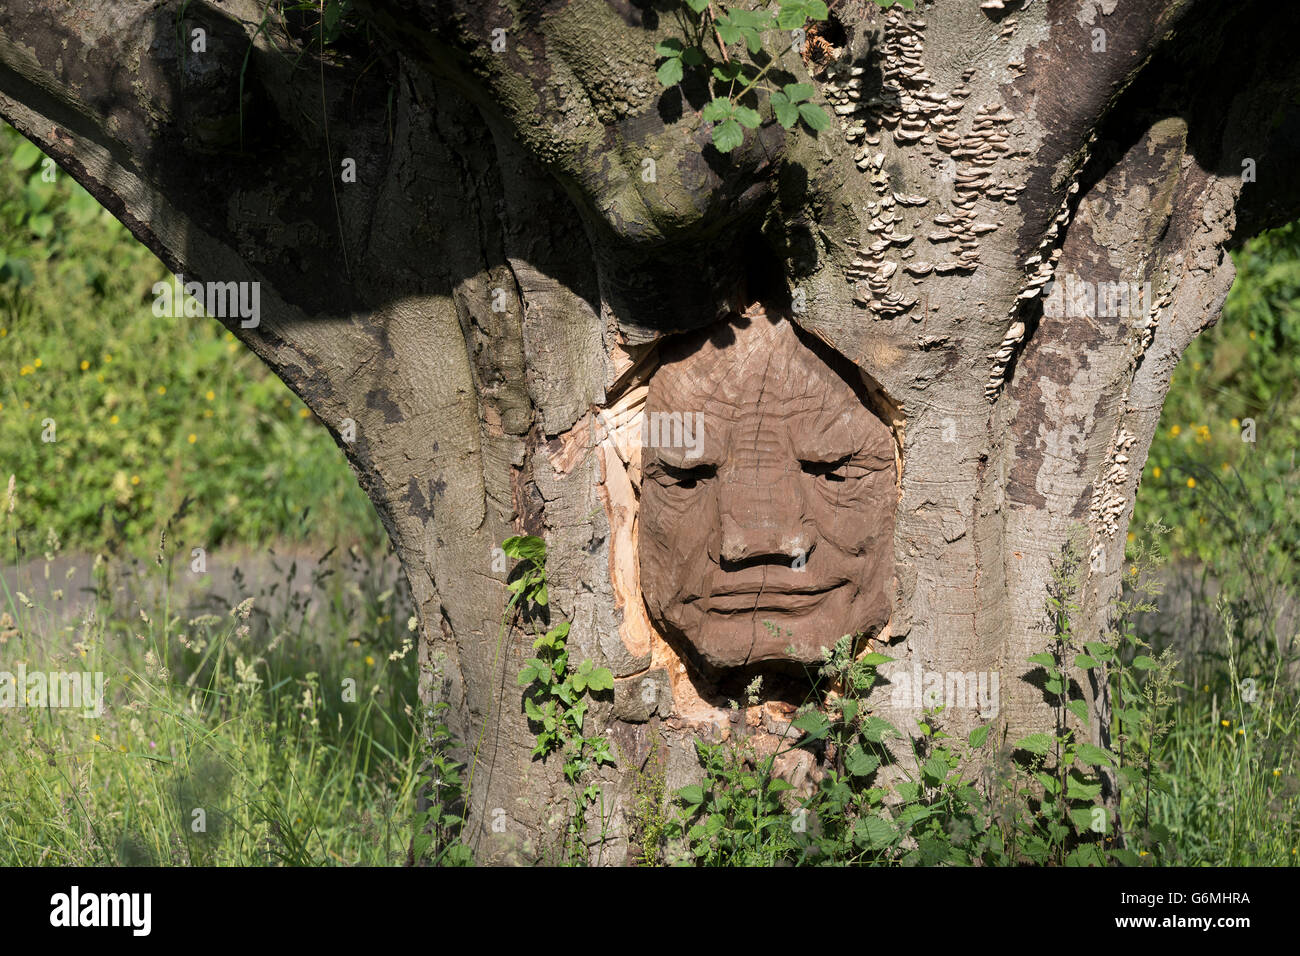 Face in the tree sculpture, Brungerley Park, Clitheroe, Ribble Valley, UK - Stock Image